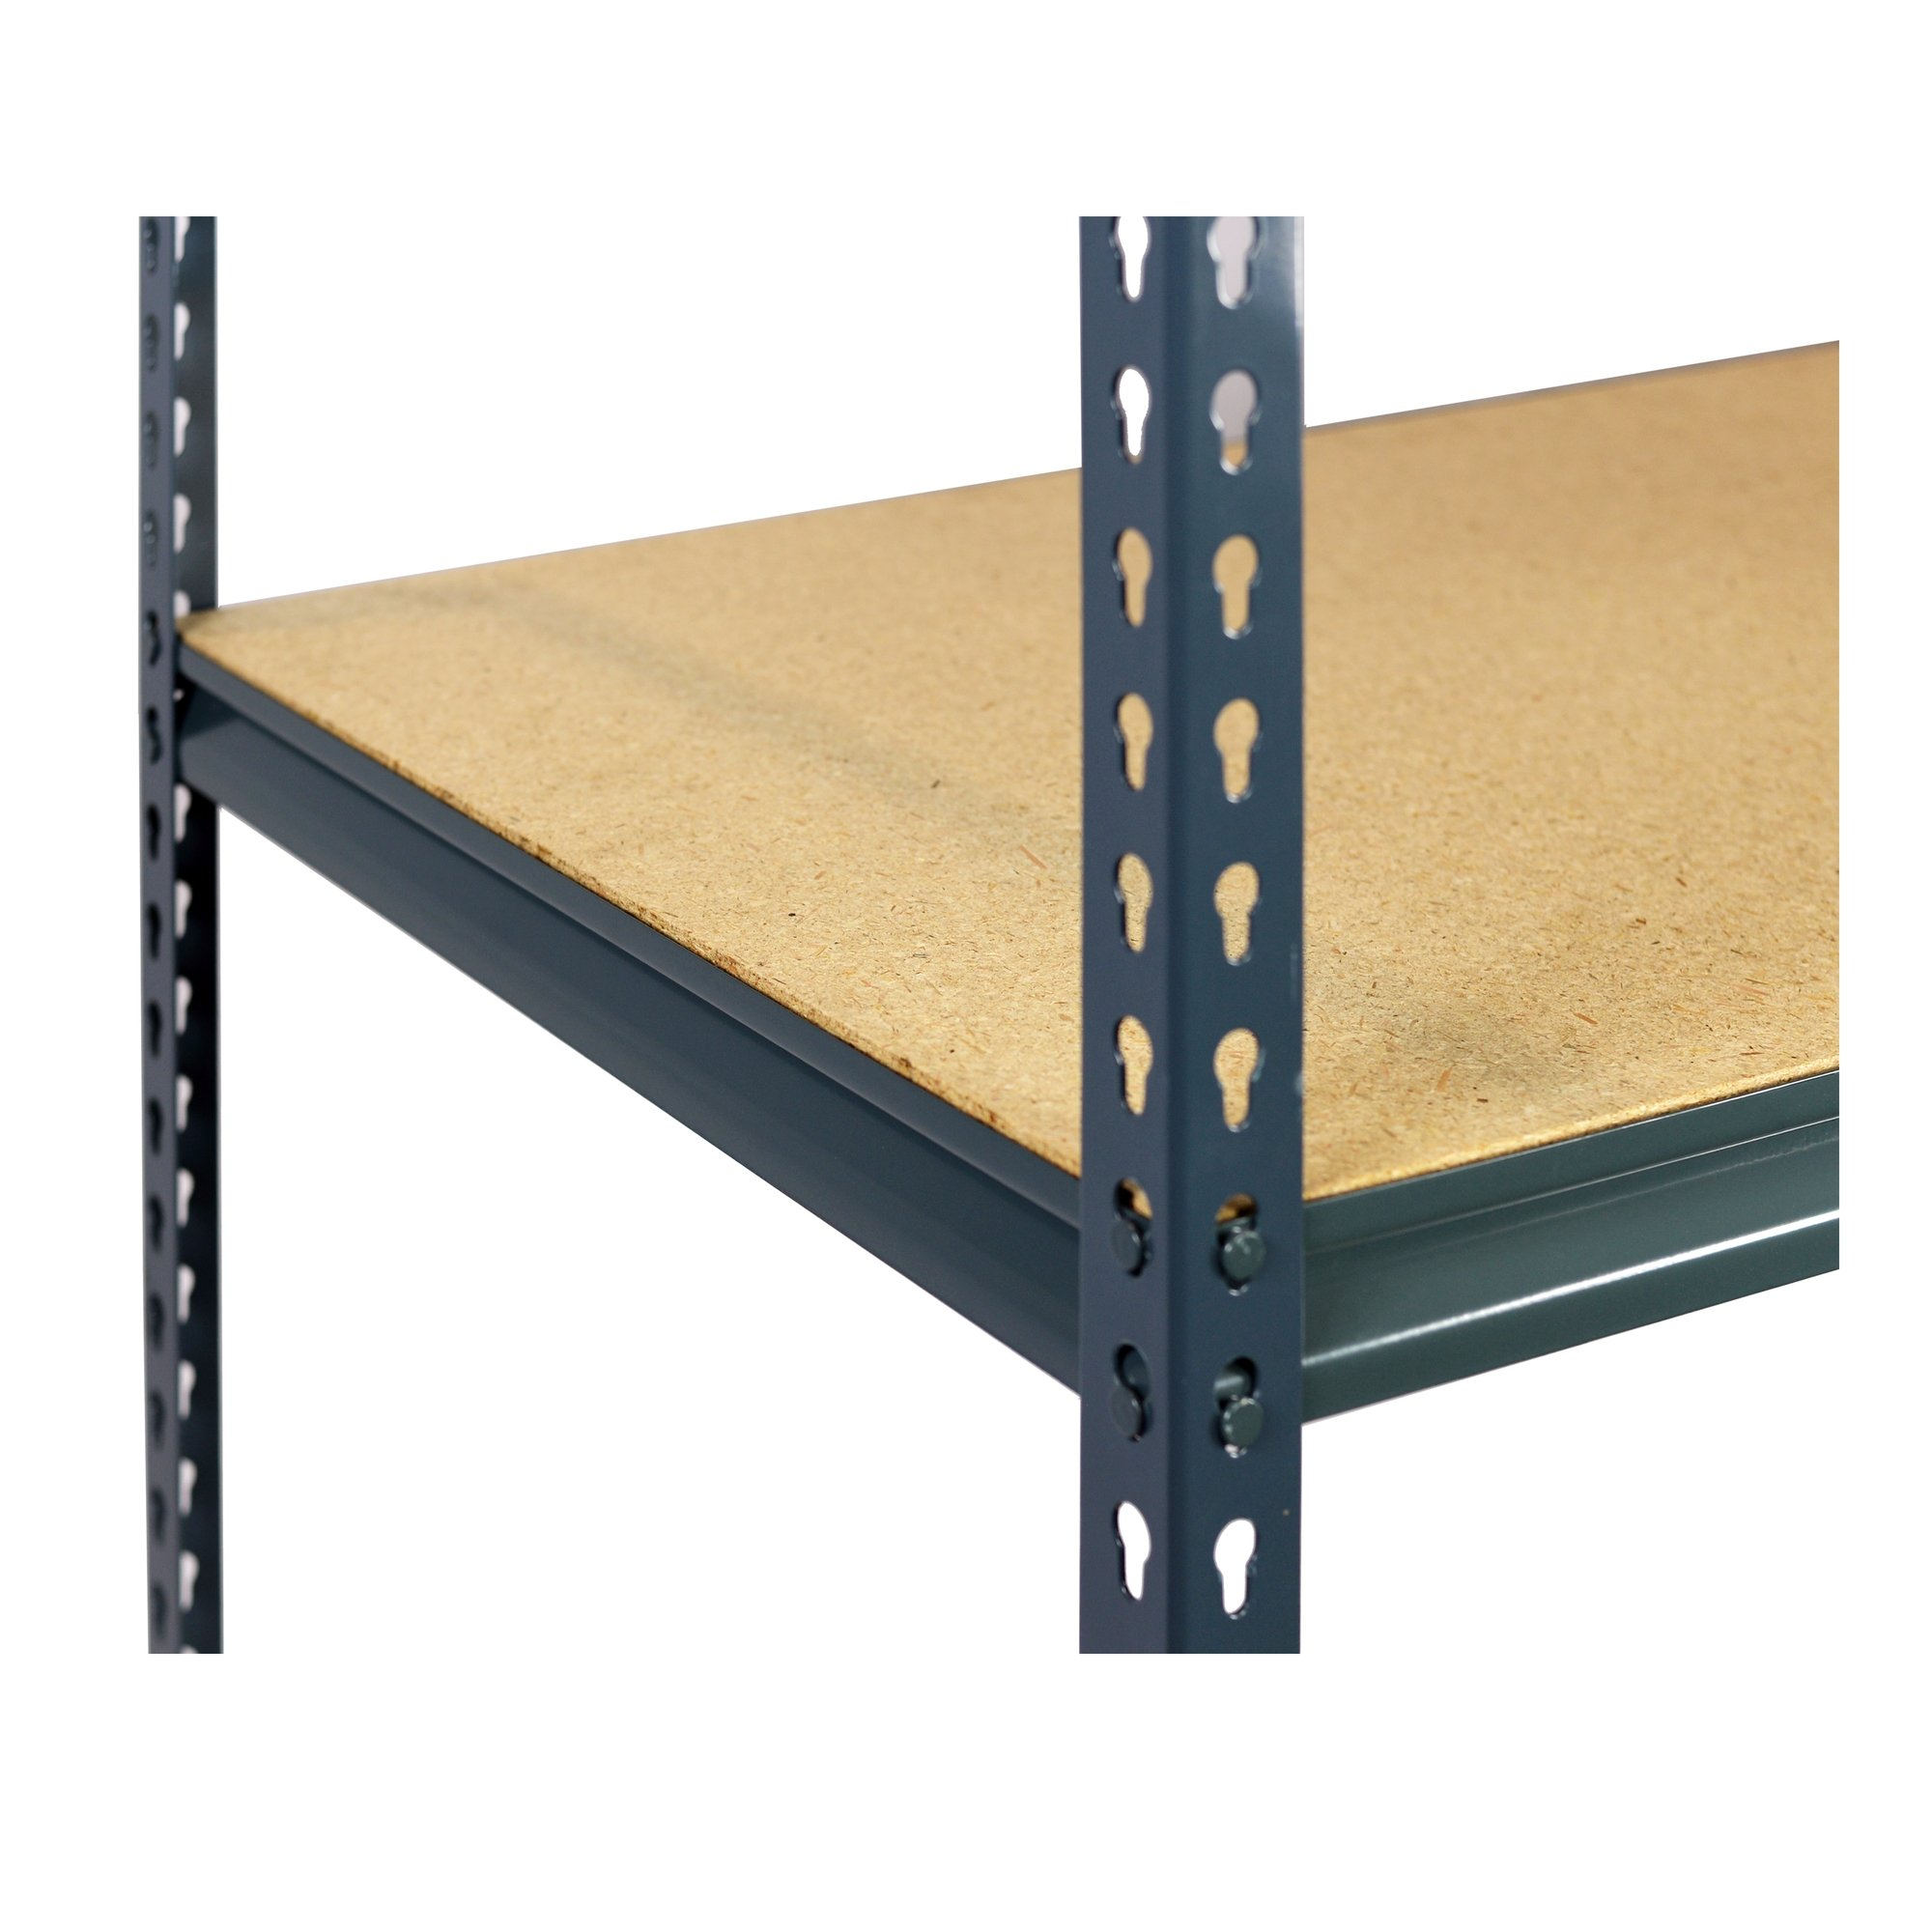 Storage Max Extra Shelf Garage Shelving Boltless, 48 x 24, Double Rivet Z-Beams, Particle Board